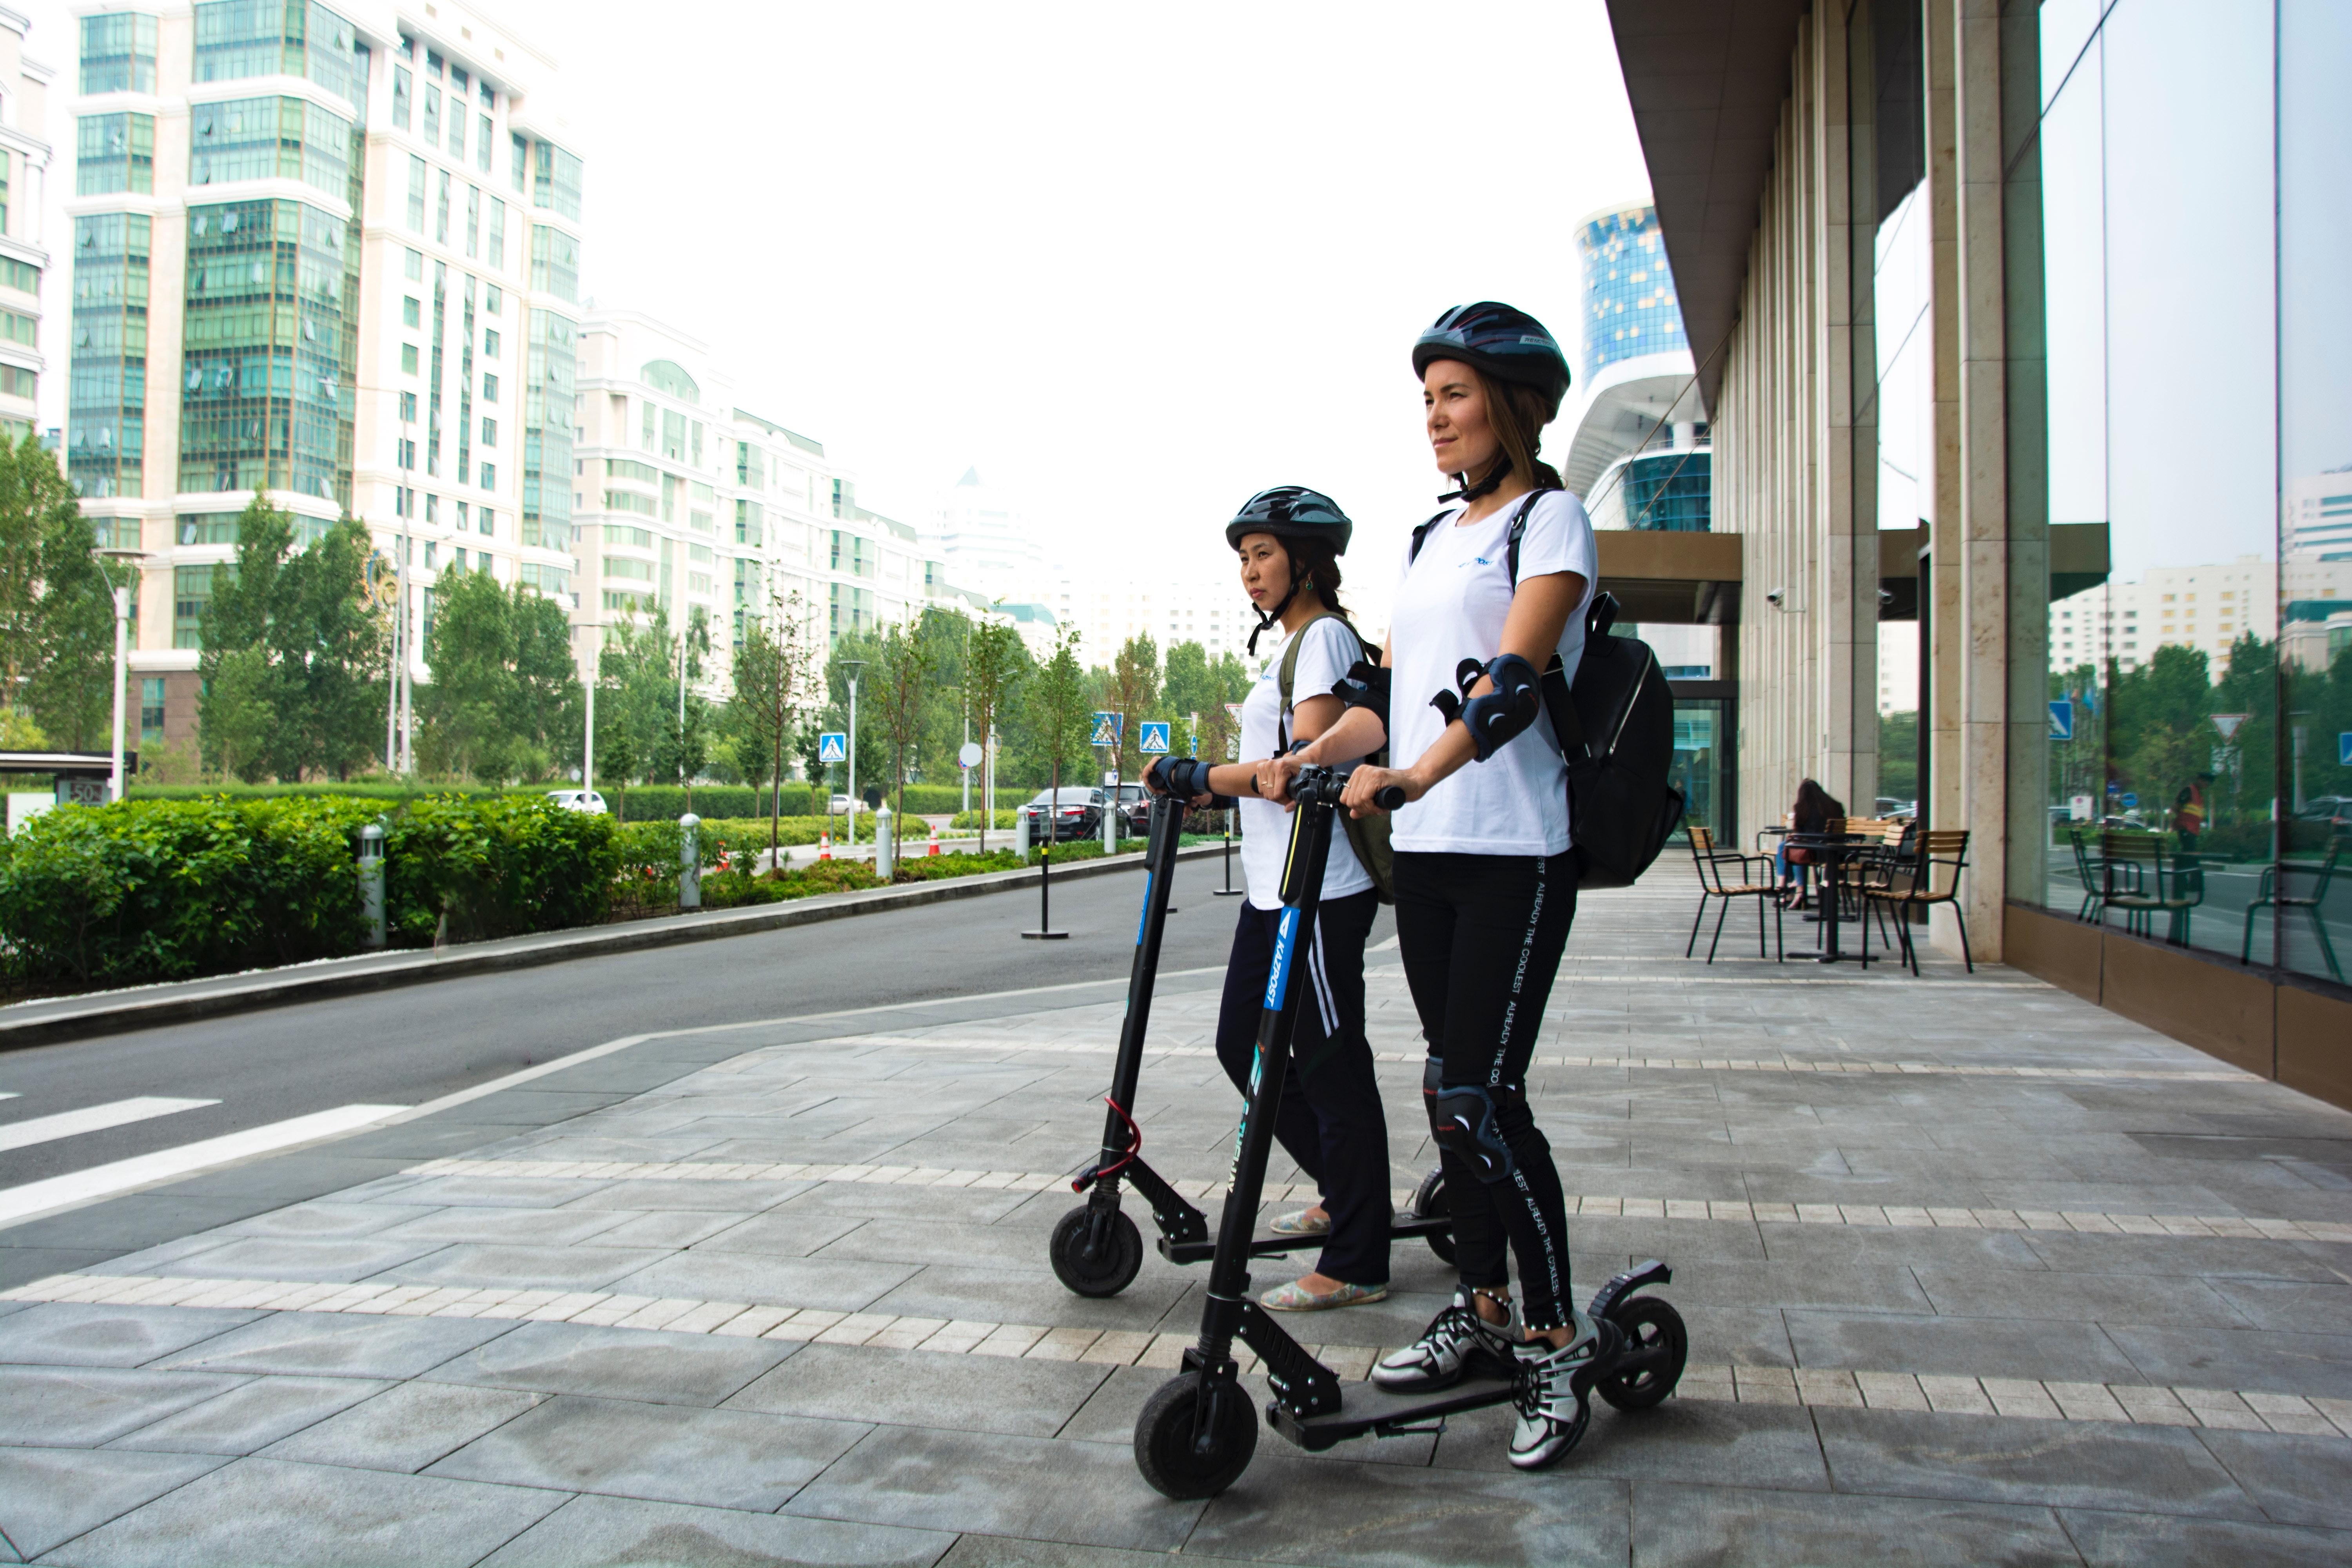 photo of two people riding scooter